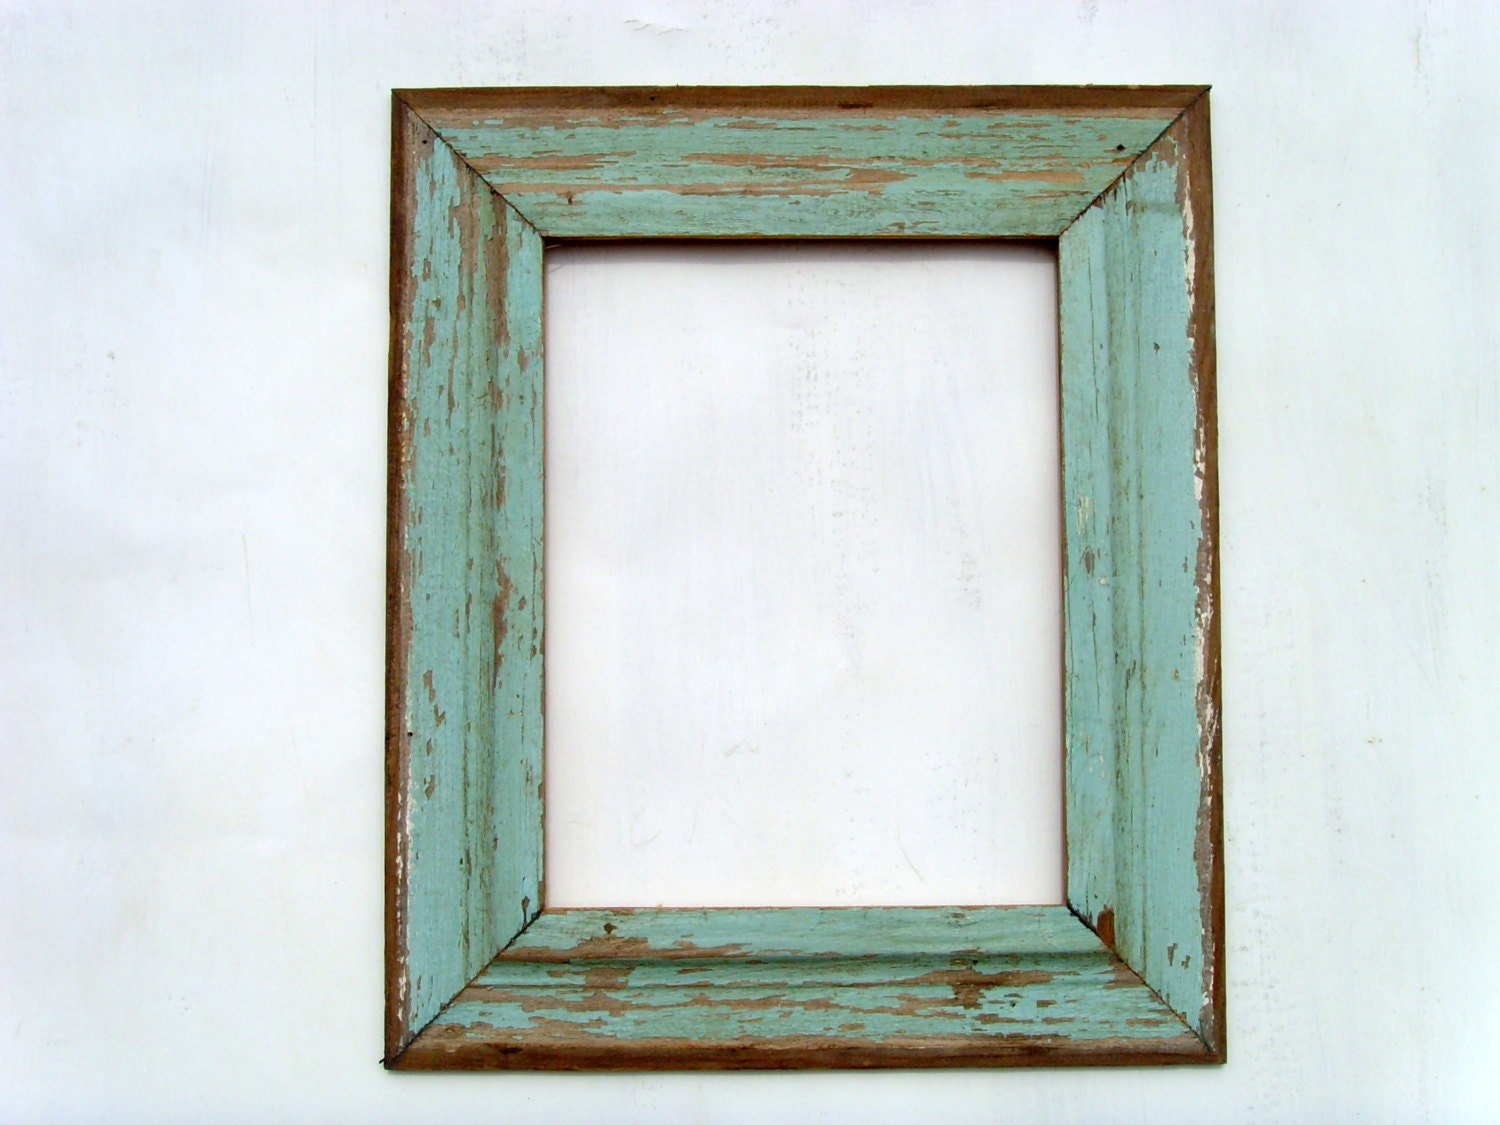 11x14 Old Cottage Siding Reclaimed Wood Frame Green